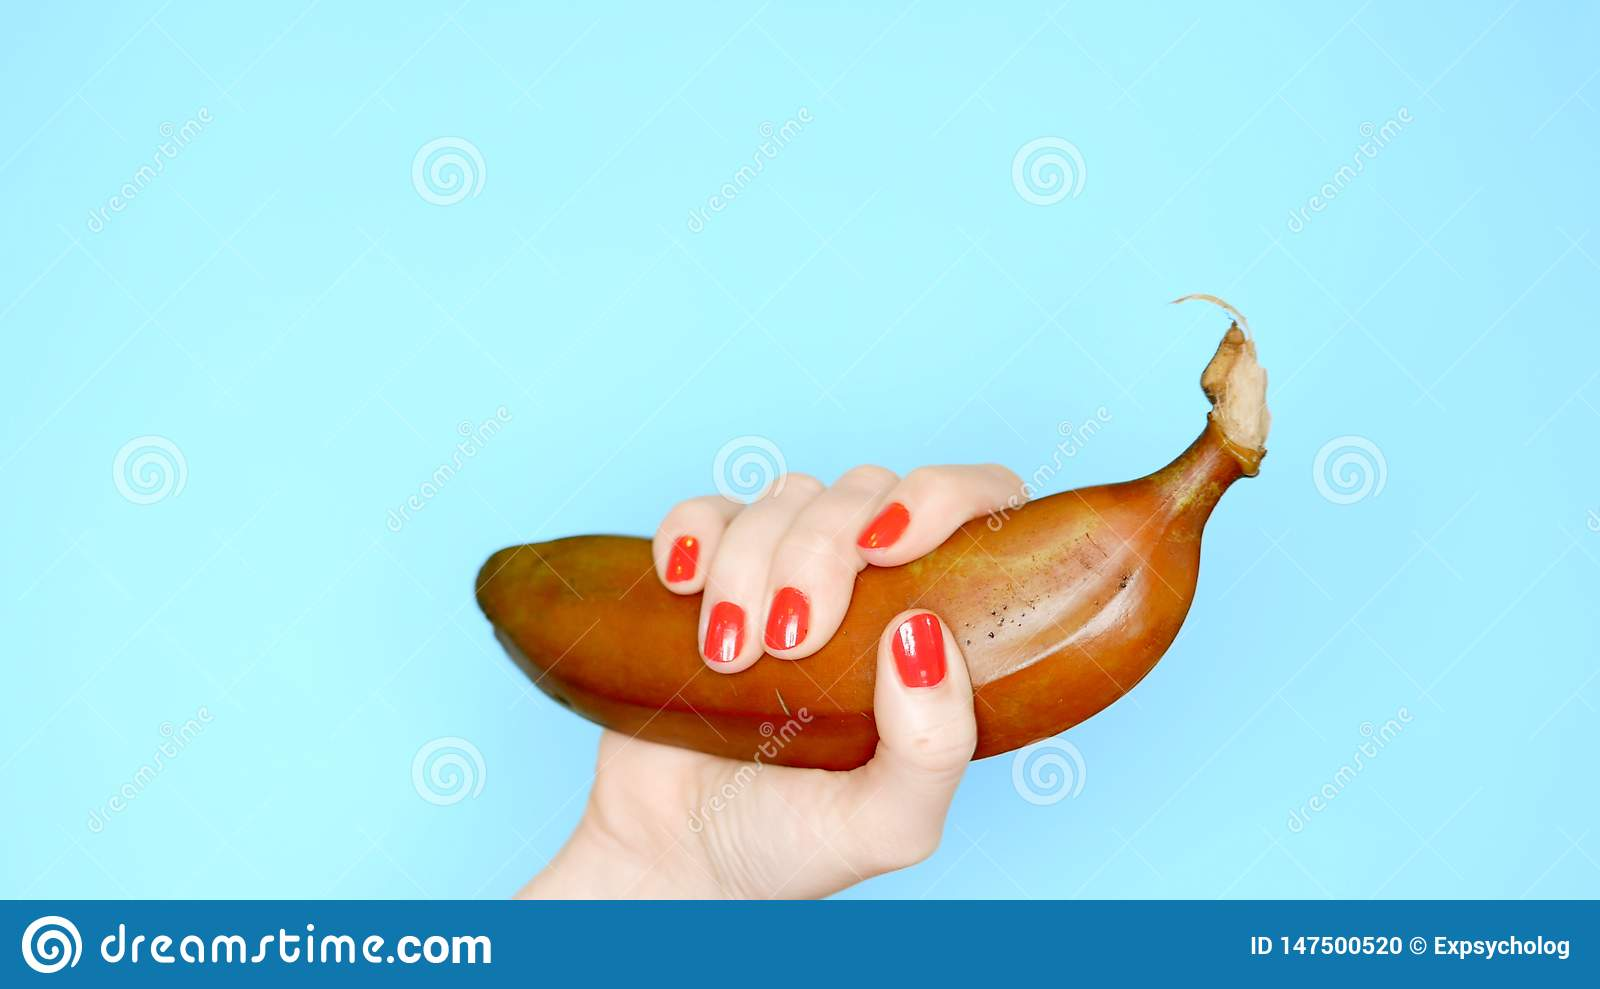 Female hands with red nails hold a red banana on a blue background